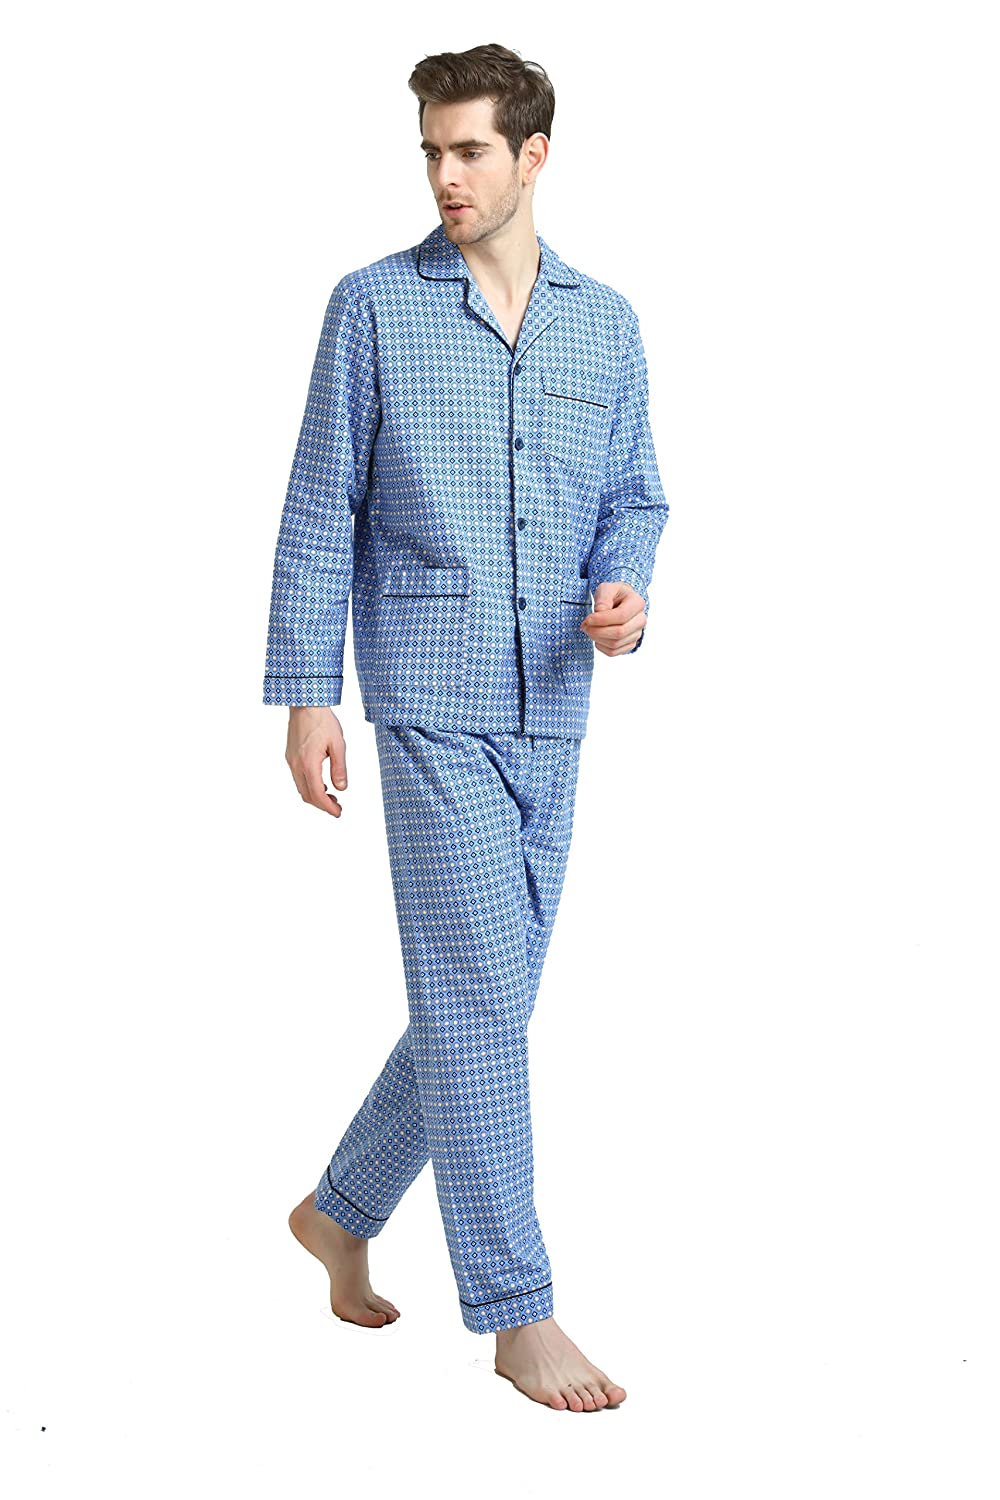 Global Men's Pyjamas 100% Cotton Comfortable Flannel Sleepwear Long-Sleeve top and Bottom Flannel Pyjamas Sets